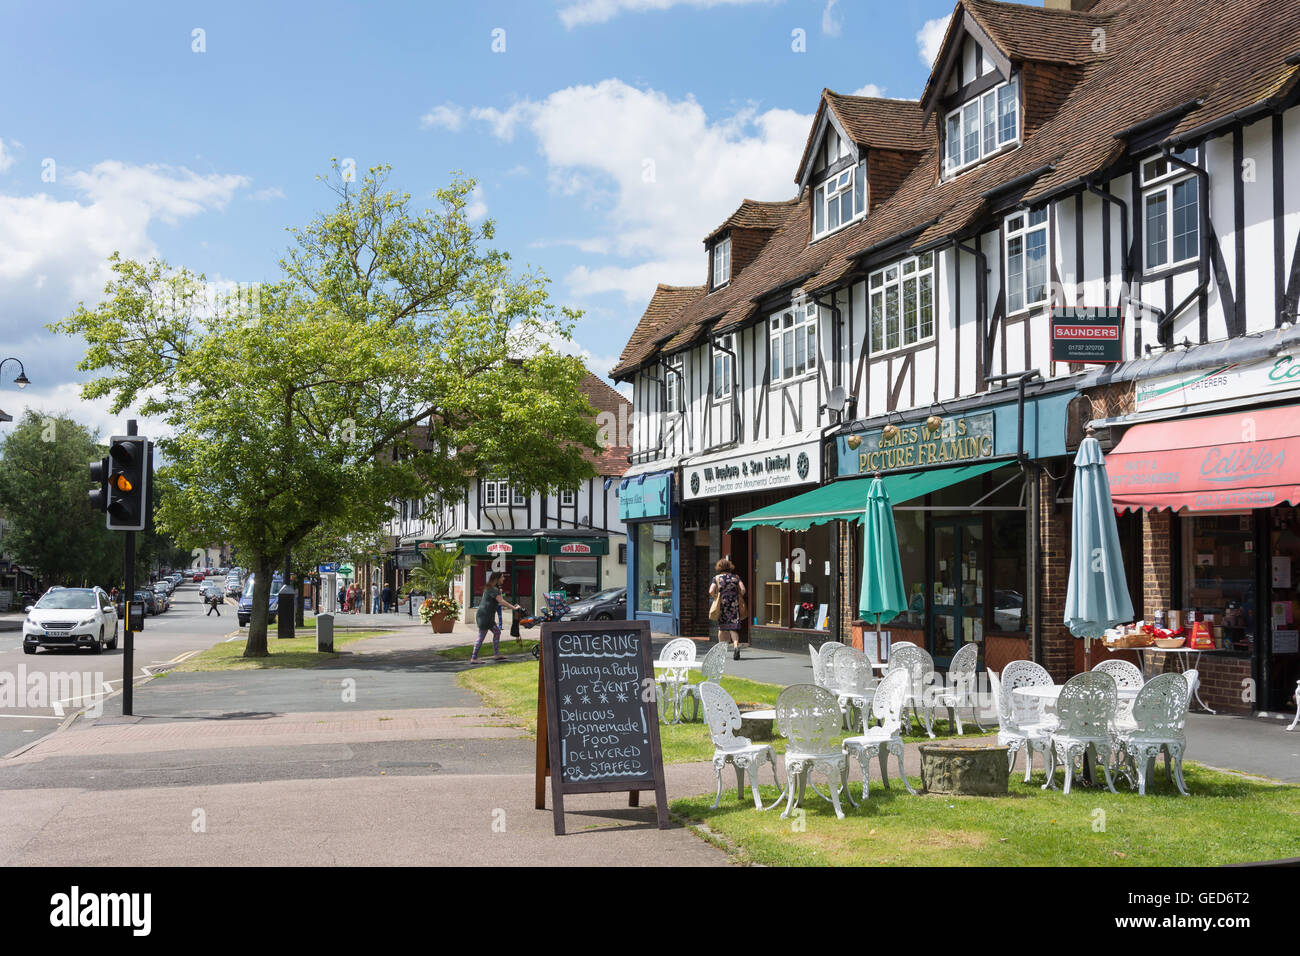 Banstead surrey united kingdom